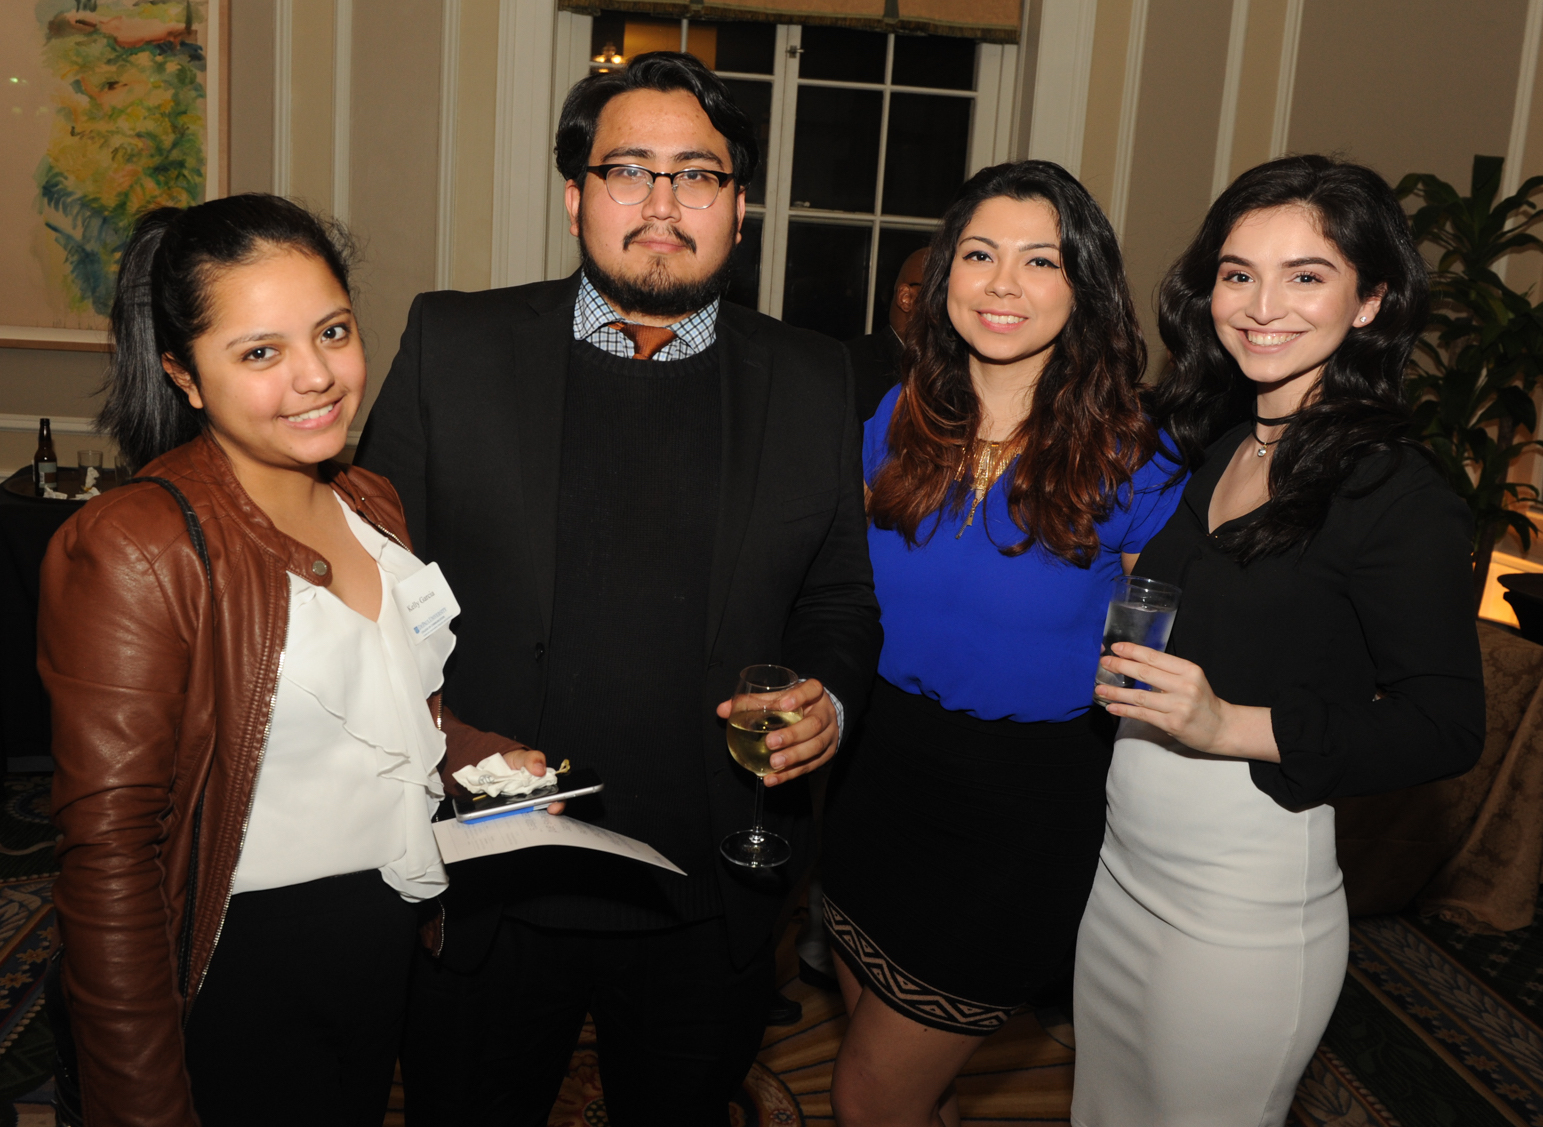 Journalism students and alumni were invited to attend the evening's event. (Photo Paul Berg.)